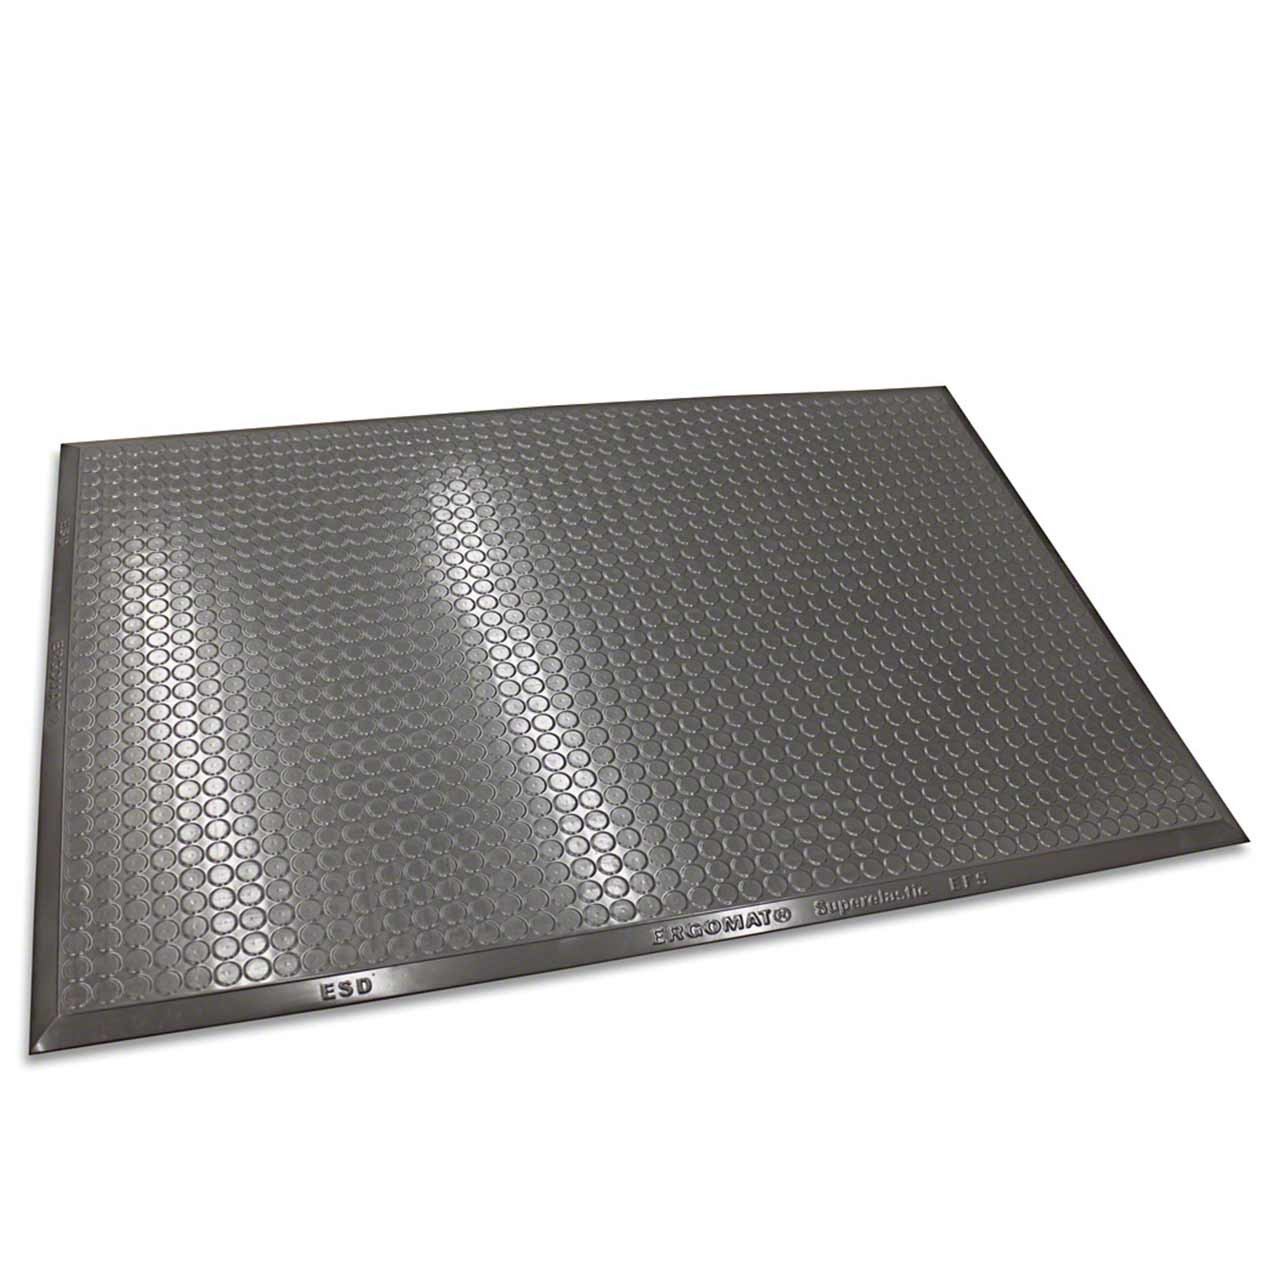 Ergomat Complete Smooth mats tolerate liquids while creating a smooth surface for carts and pallet jacks